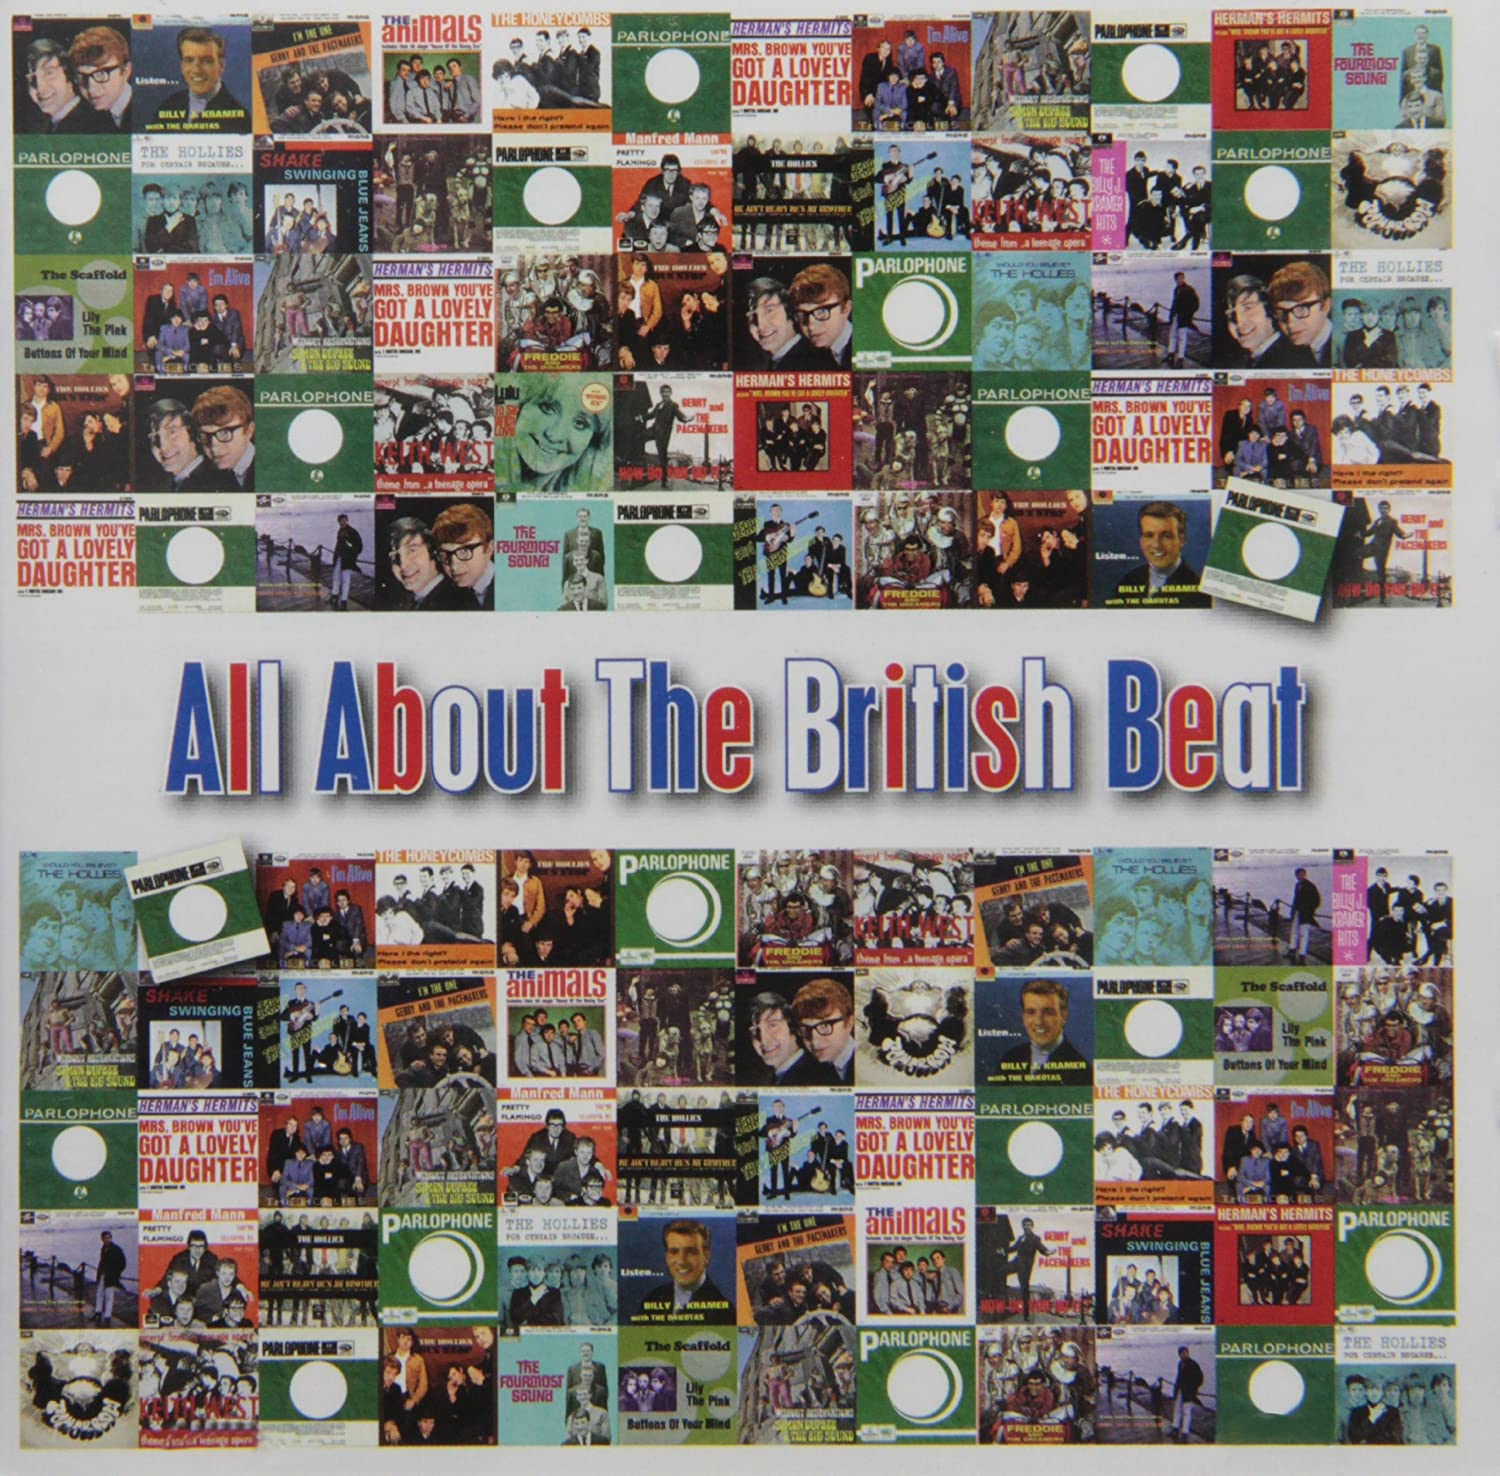 All About The British Beat